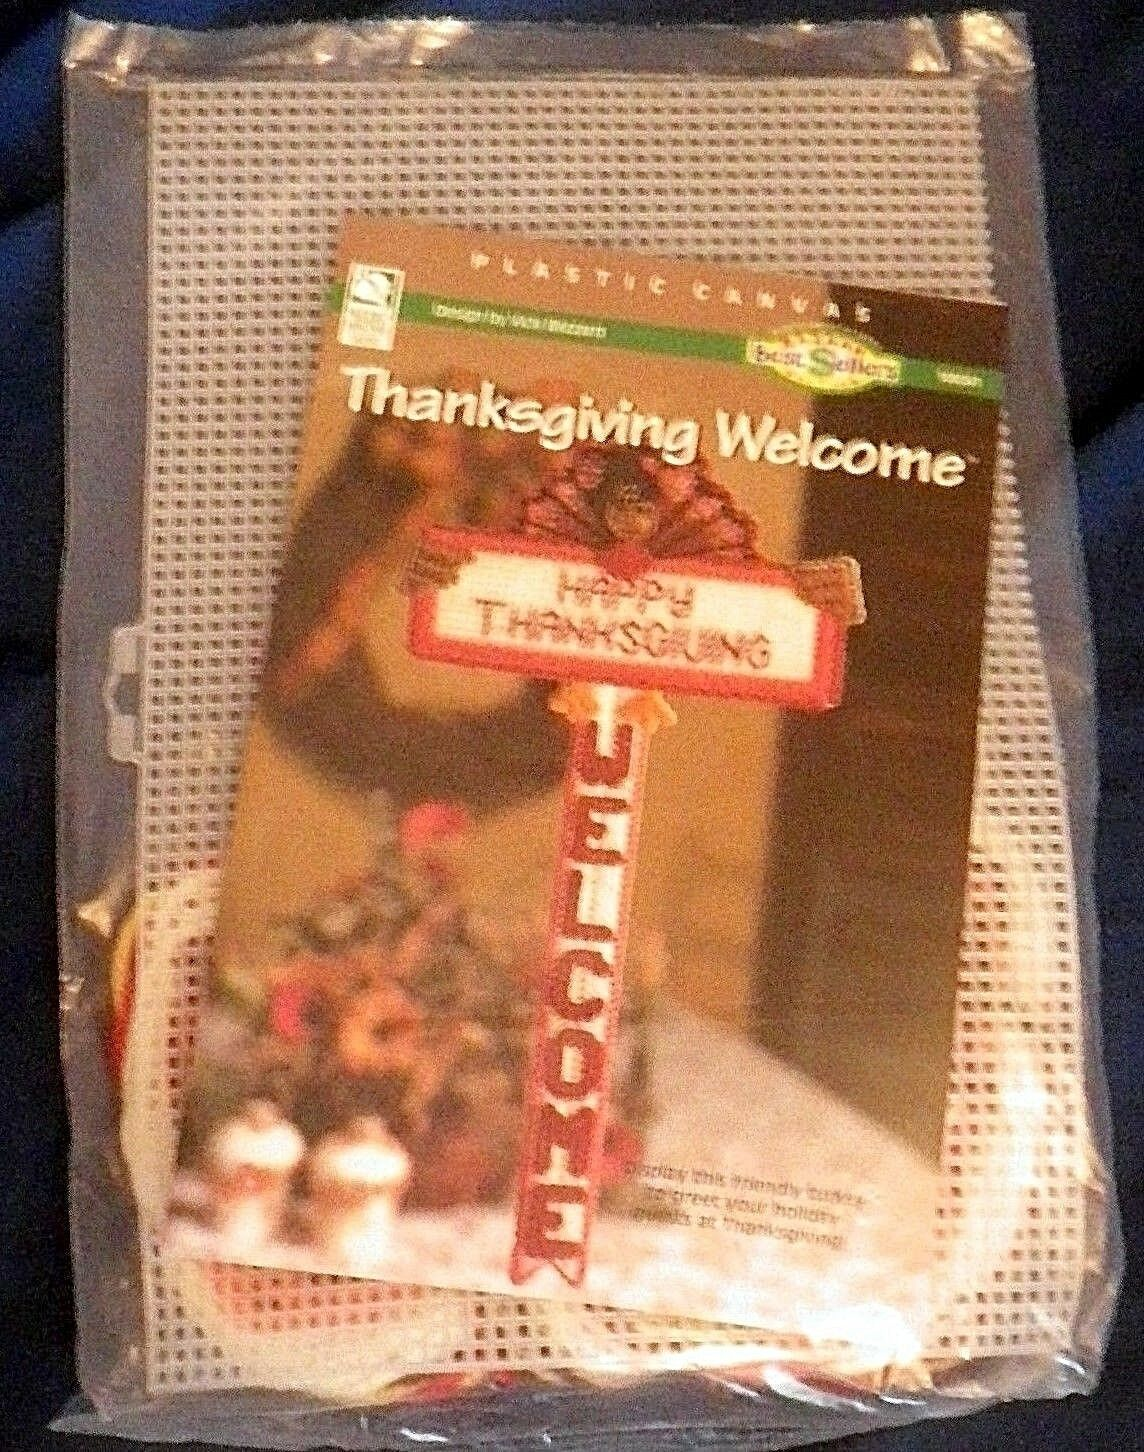 Happy Thanksgiving Welcome Plastic Canvas Kit Turkey Sign House of White Birches - $29.99